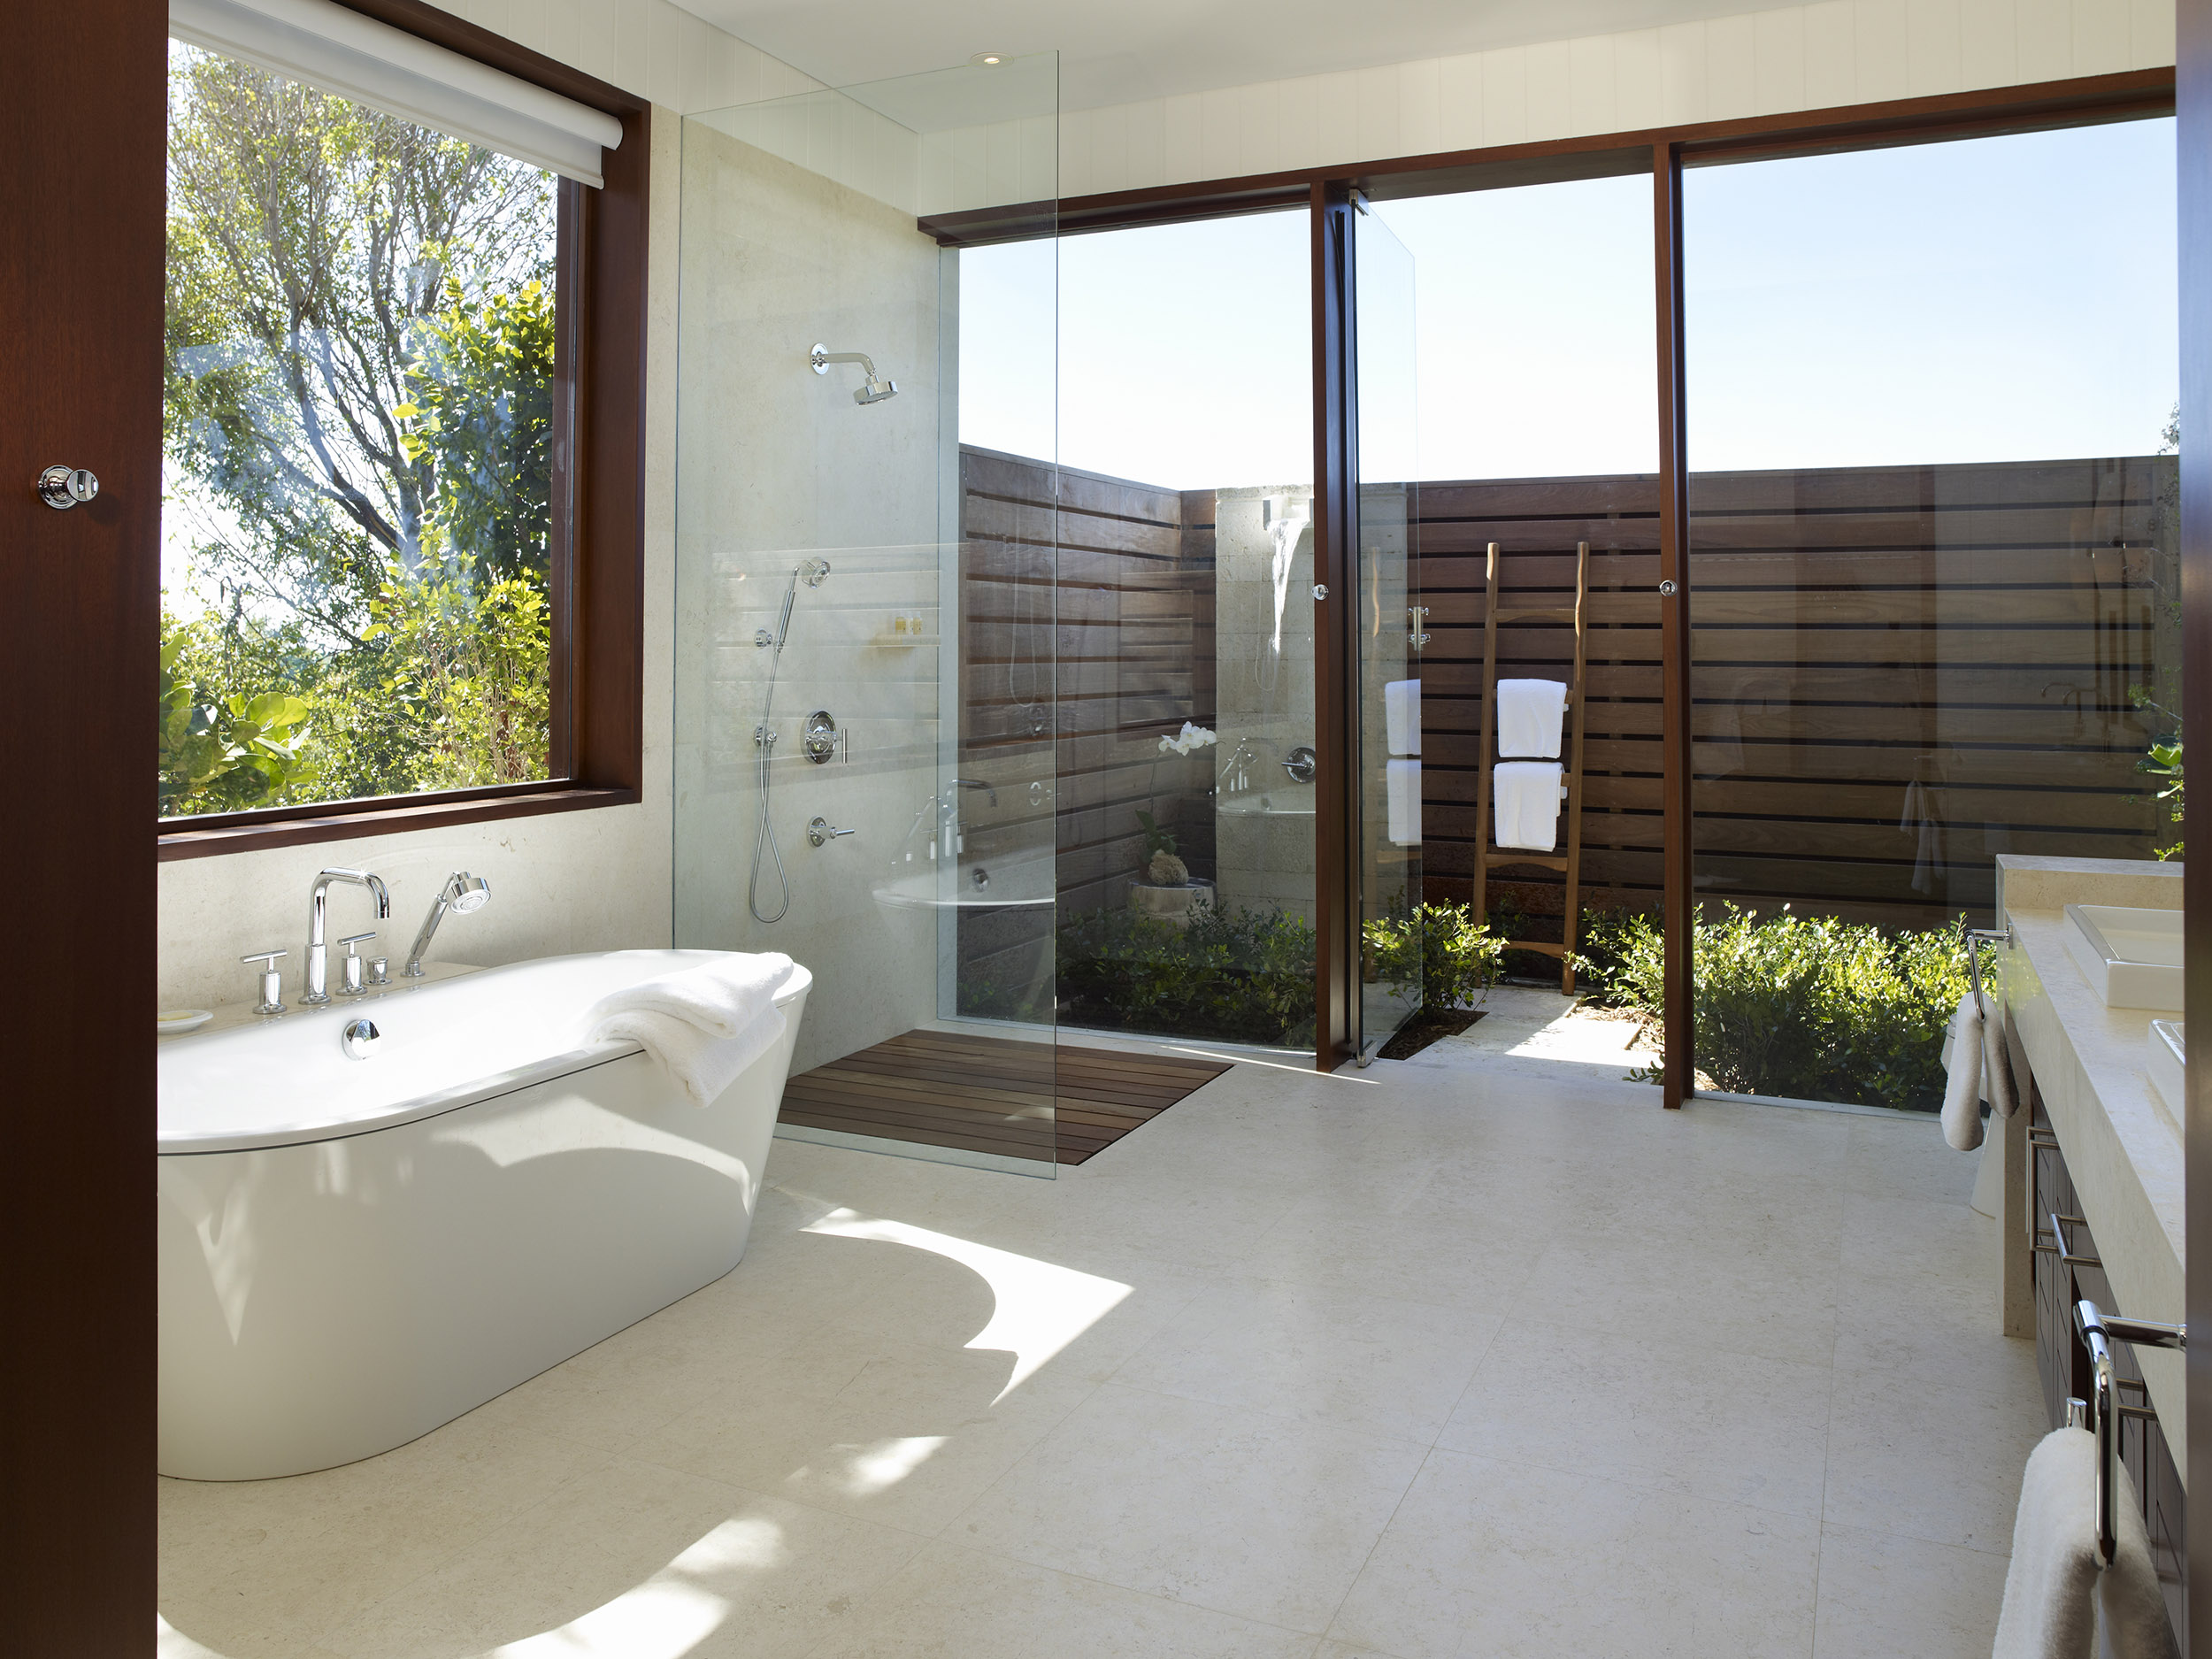 Tamarind - view of a bathroom with outdoor shower